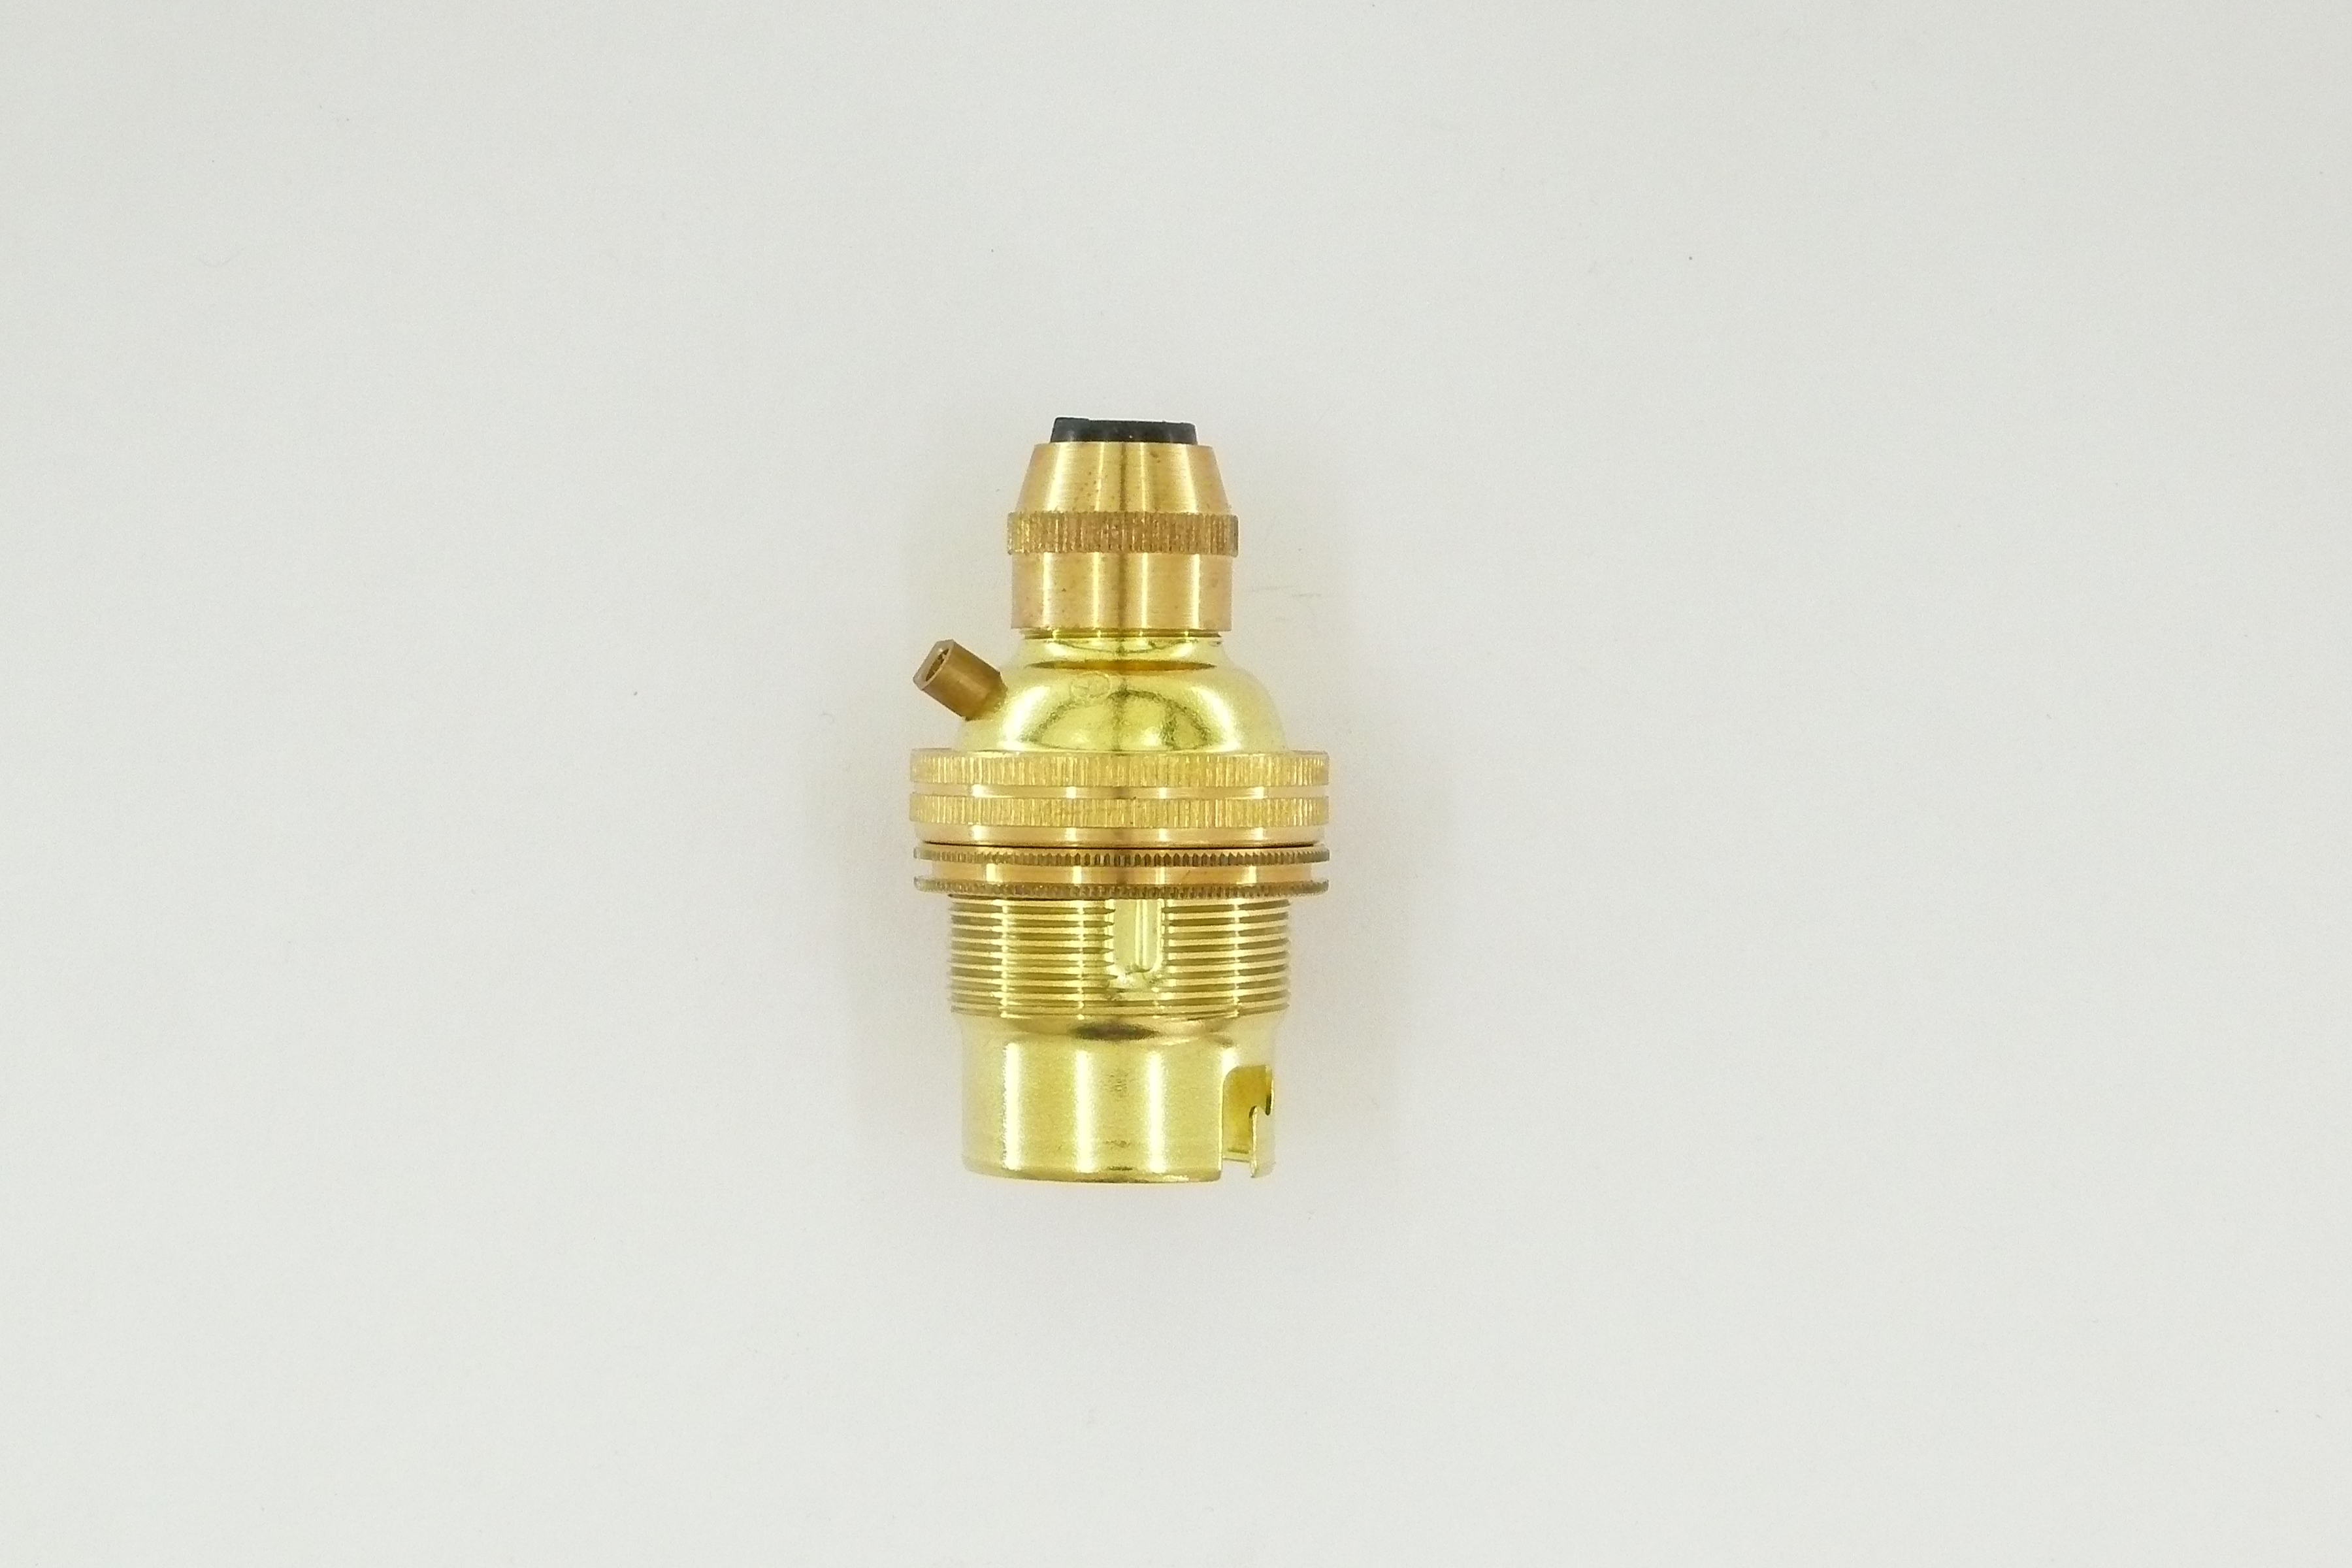 Brass bayonet lampholder cord grip suitable for pendant braided cable BC B22 Thumbnail 1